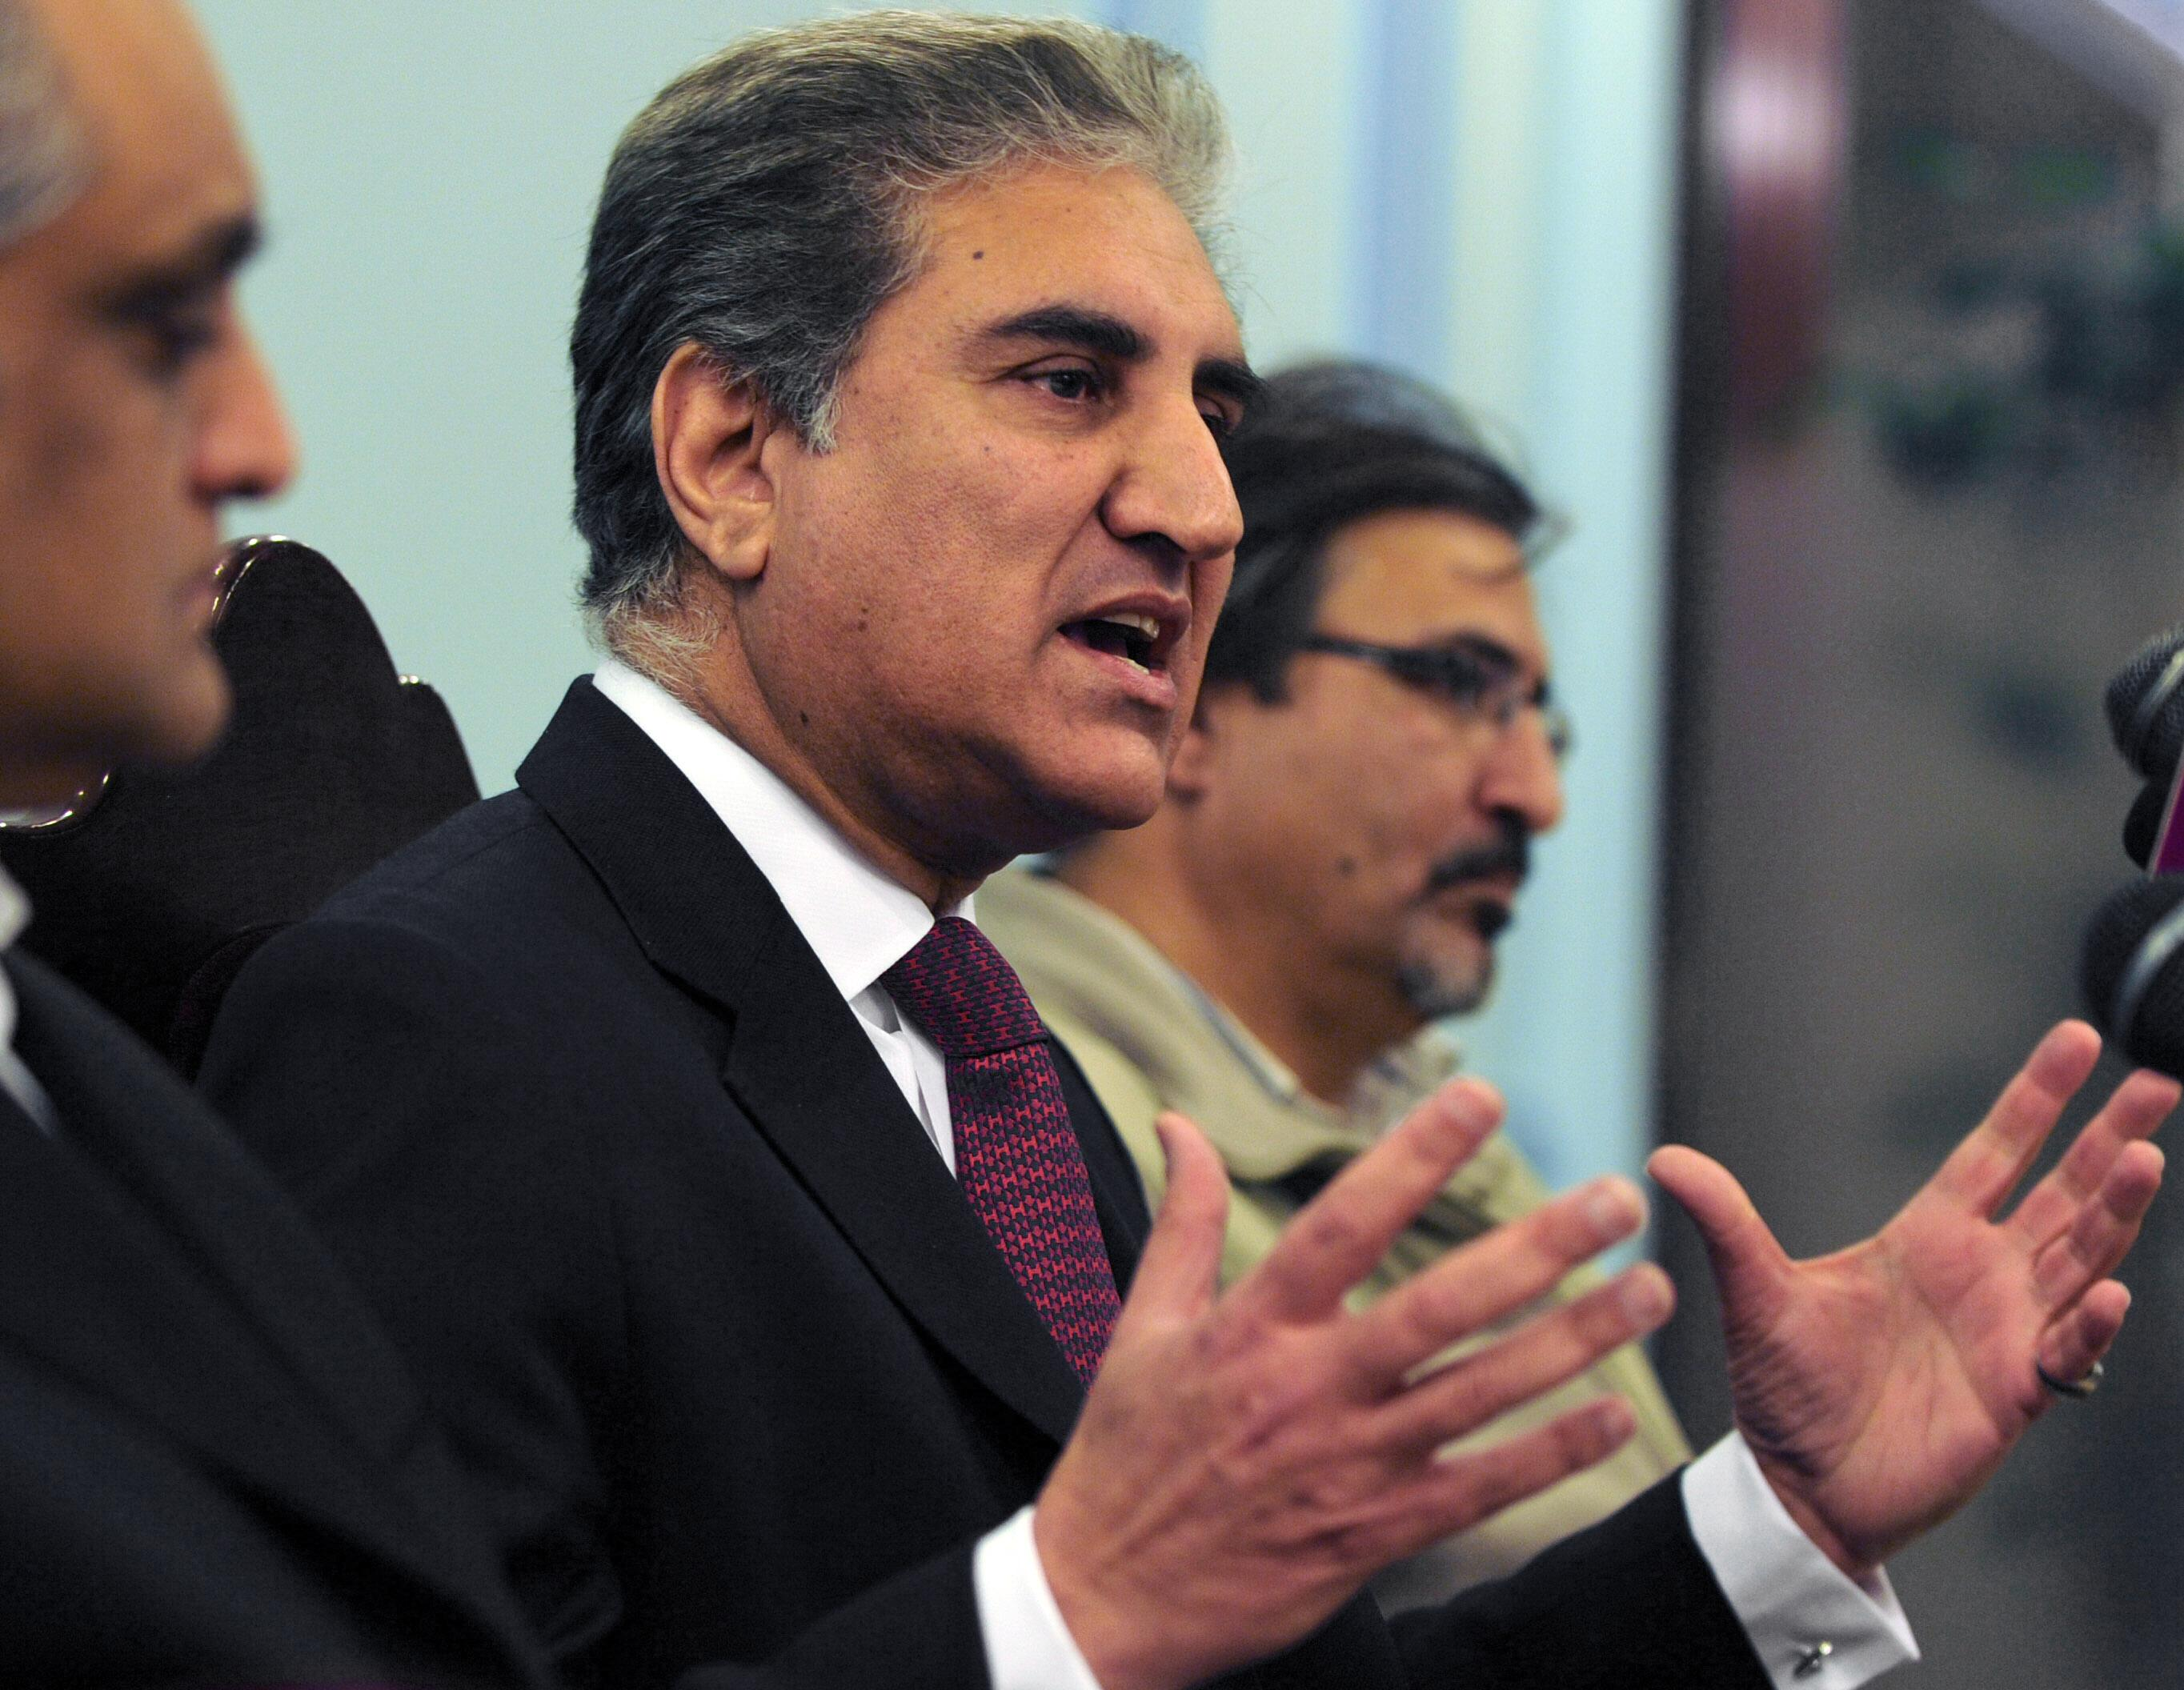 shah-mehmood-qureshi-afp-2-2-2-2-2-2-2-2-2-2-2-2-3-2-2-2-2-2-2-2-2-2-3-3